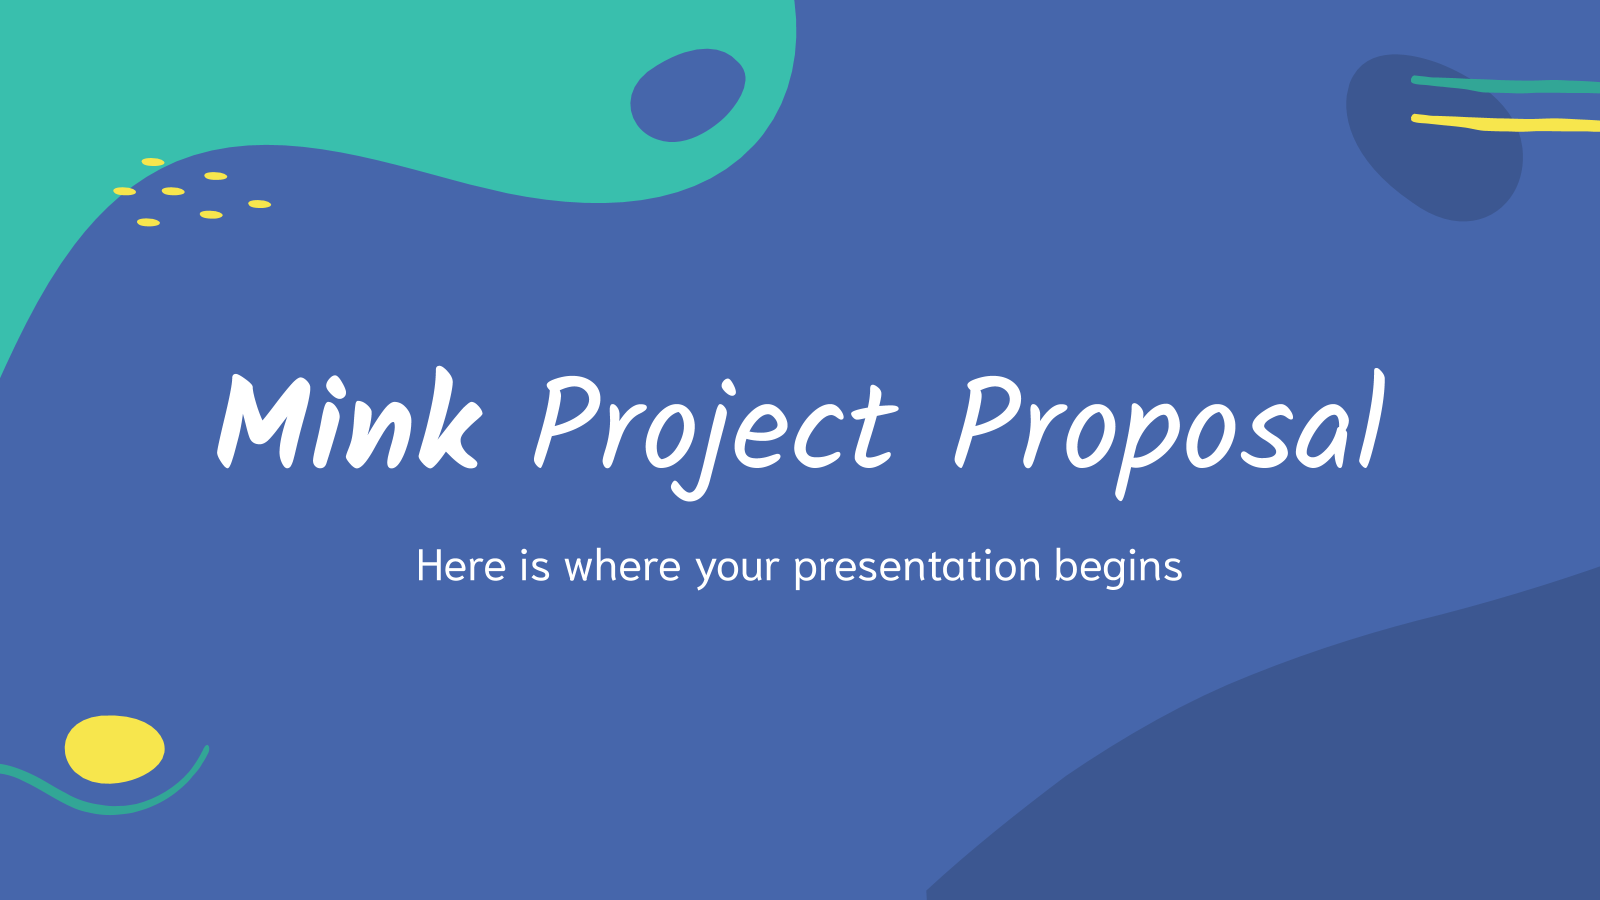 Mink Project Proposal presentation template